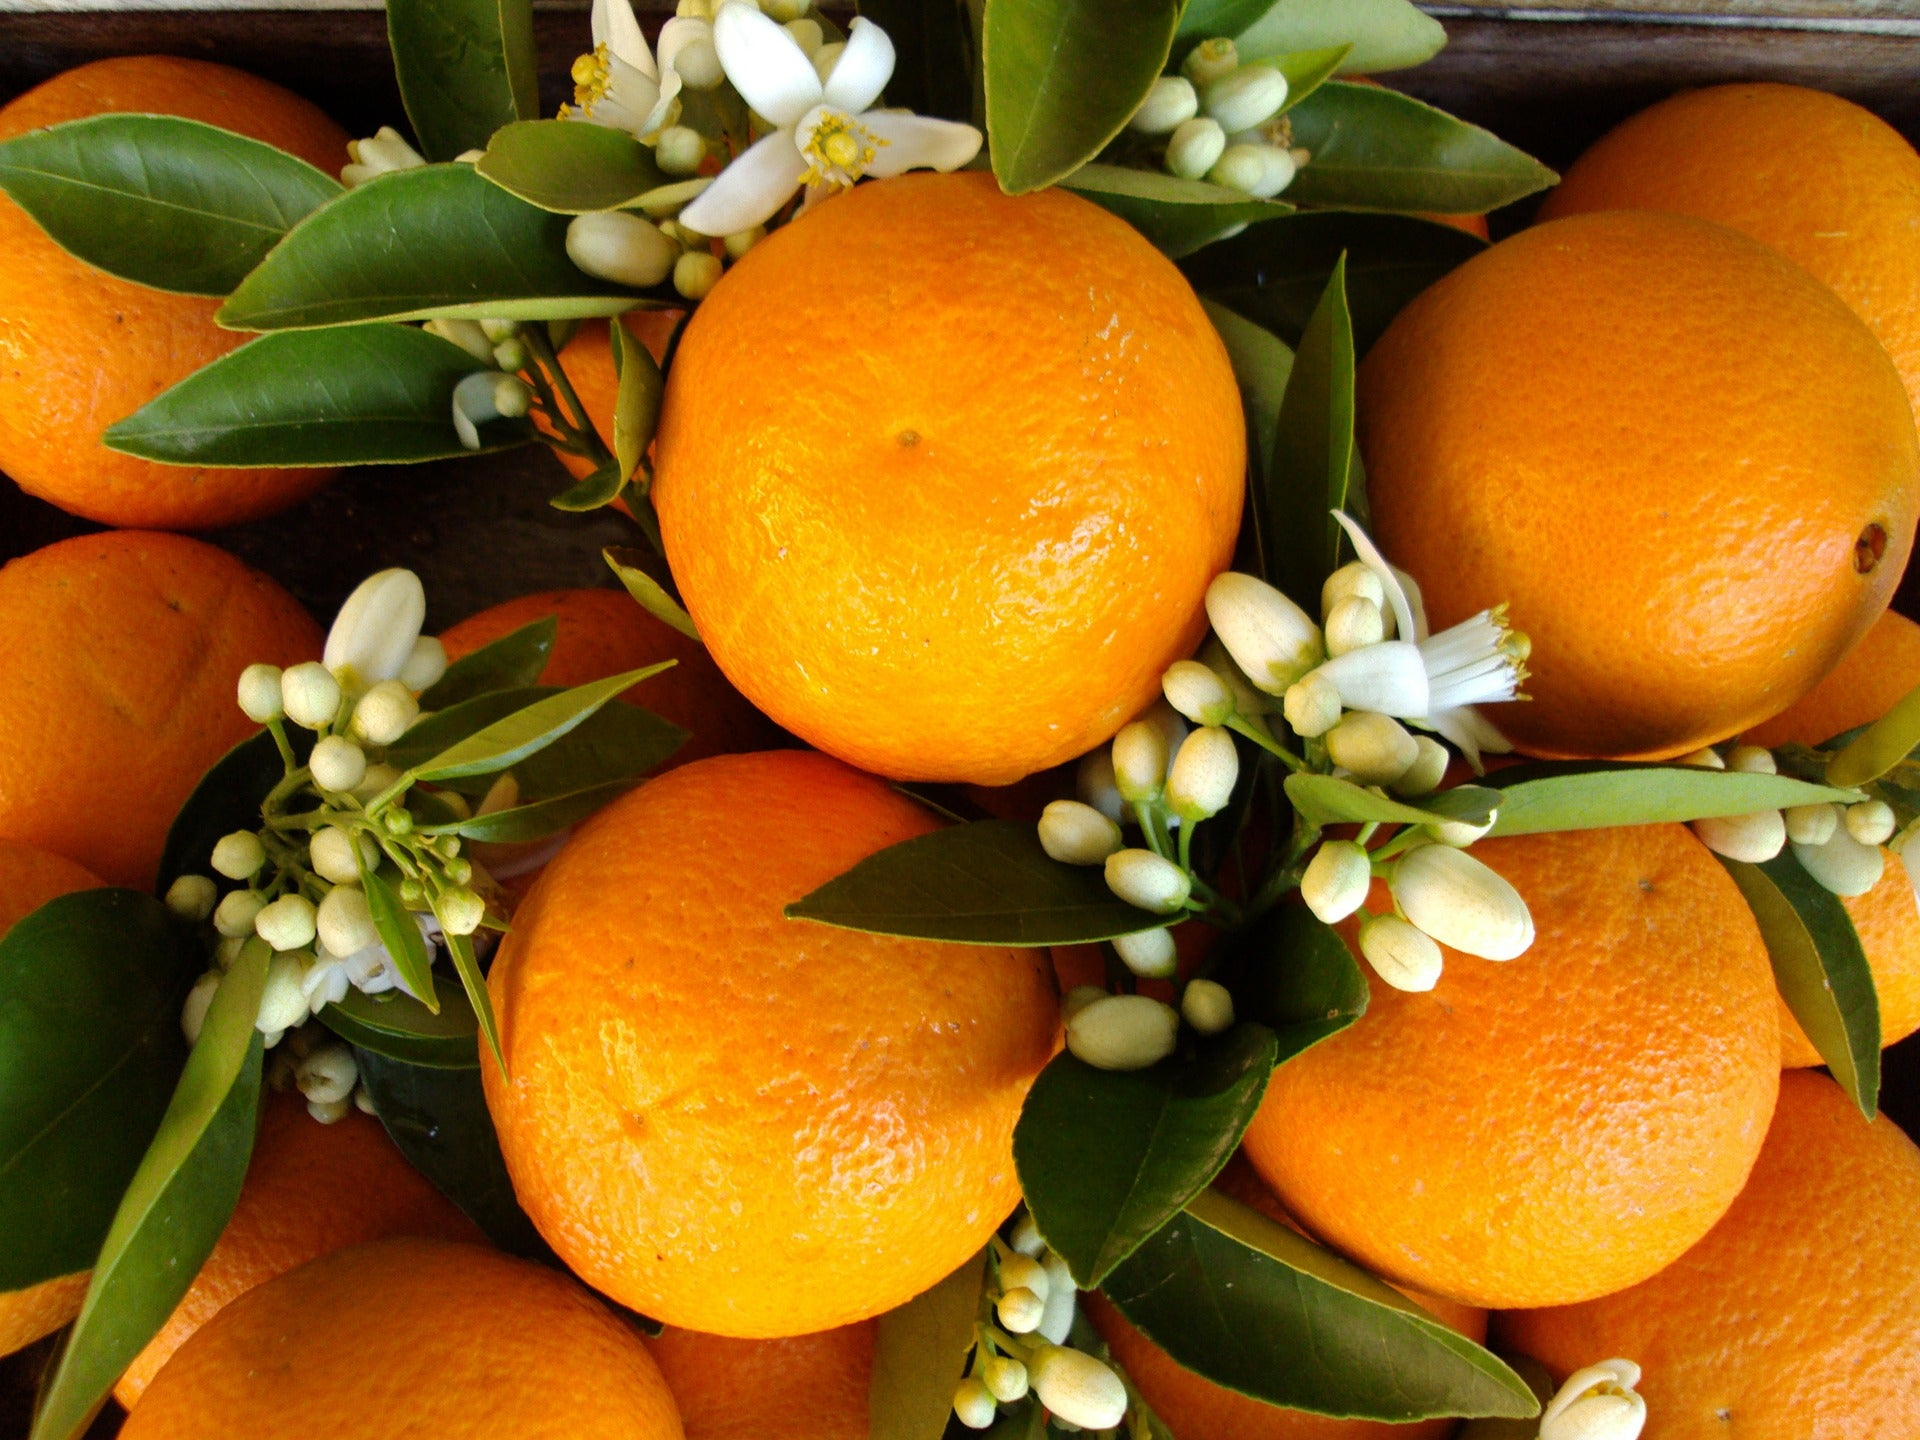 Neroli essential oil comes from the fruit of the tree